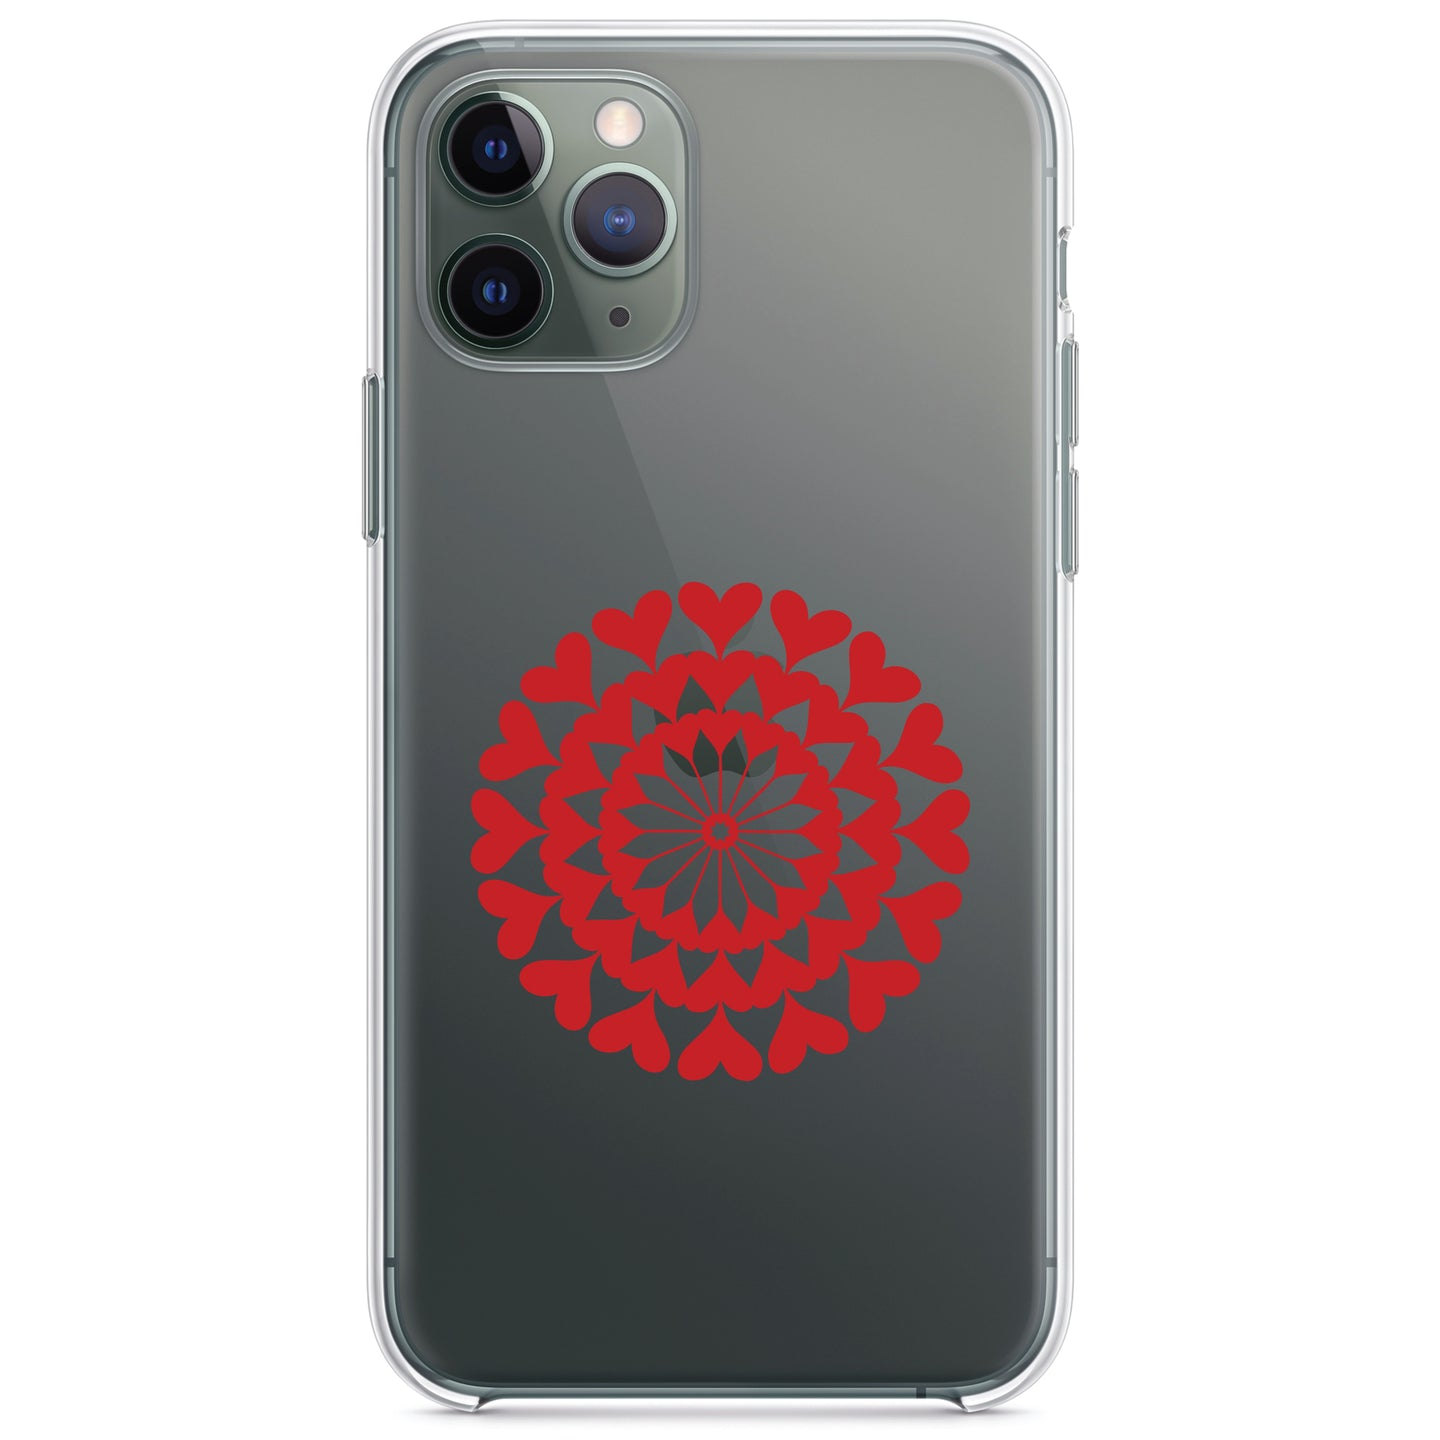 DistinctInk® Clear Shockproof Hybrid Case for Apple iPhone / Samsung Galaxy / Google Pixel - Red Hearts Mandala